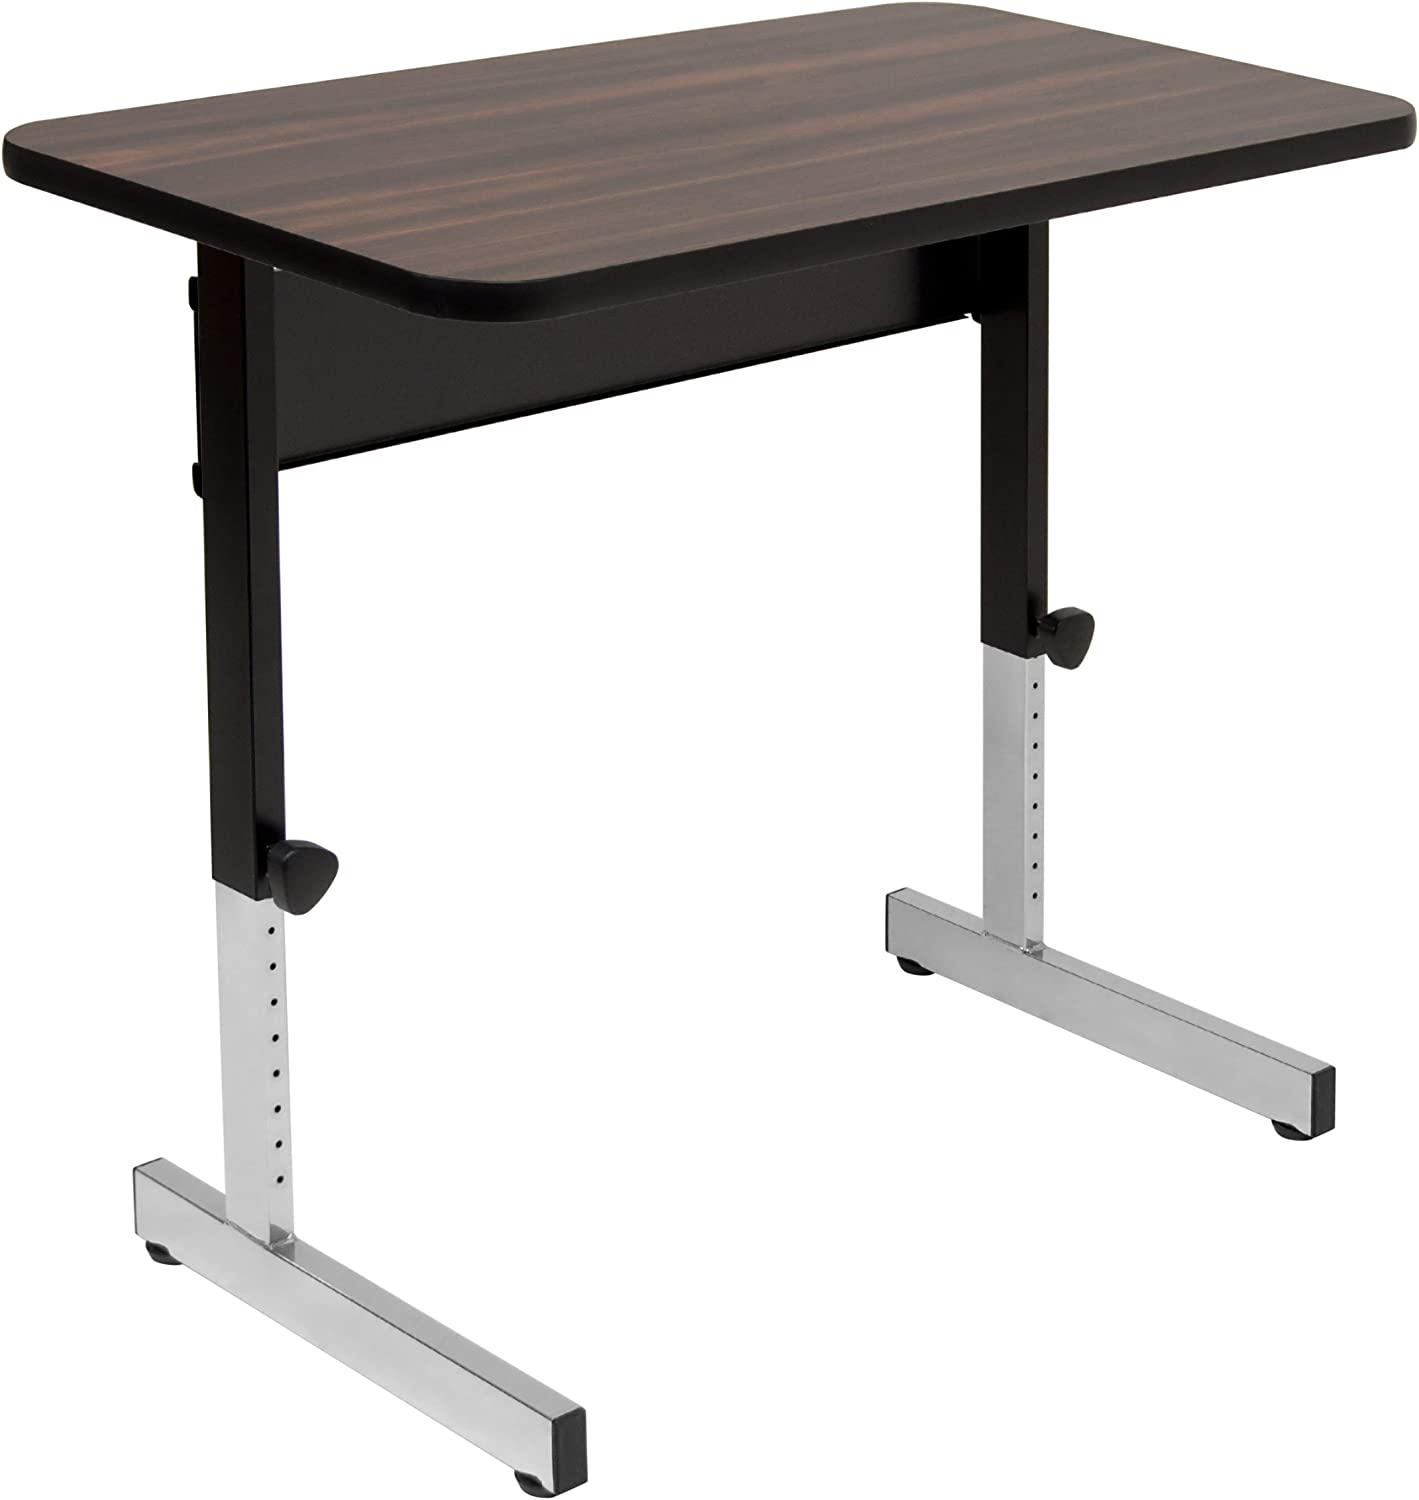 "Calico Designs Adapta Height Adjustable Office Desk, All-Purpose Utility Table, Sit to Stand up Desk Home Computer Desk, 23"" - 32"" in Powder Coated Black Frame and 1"" Thick Walnut Top, 36 Inch"